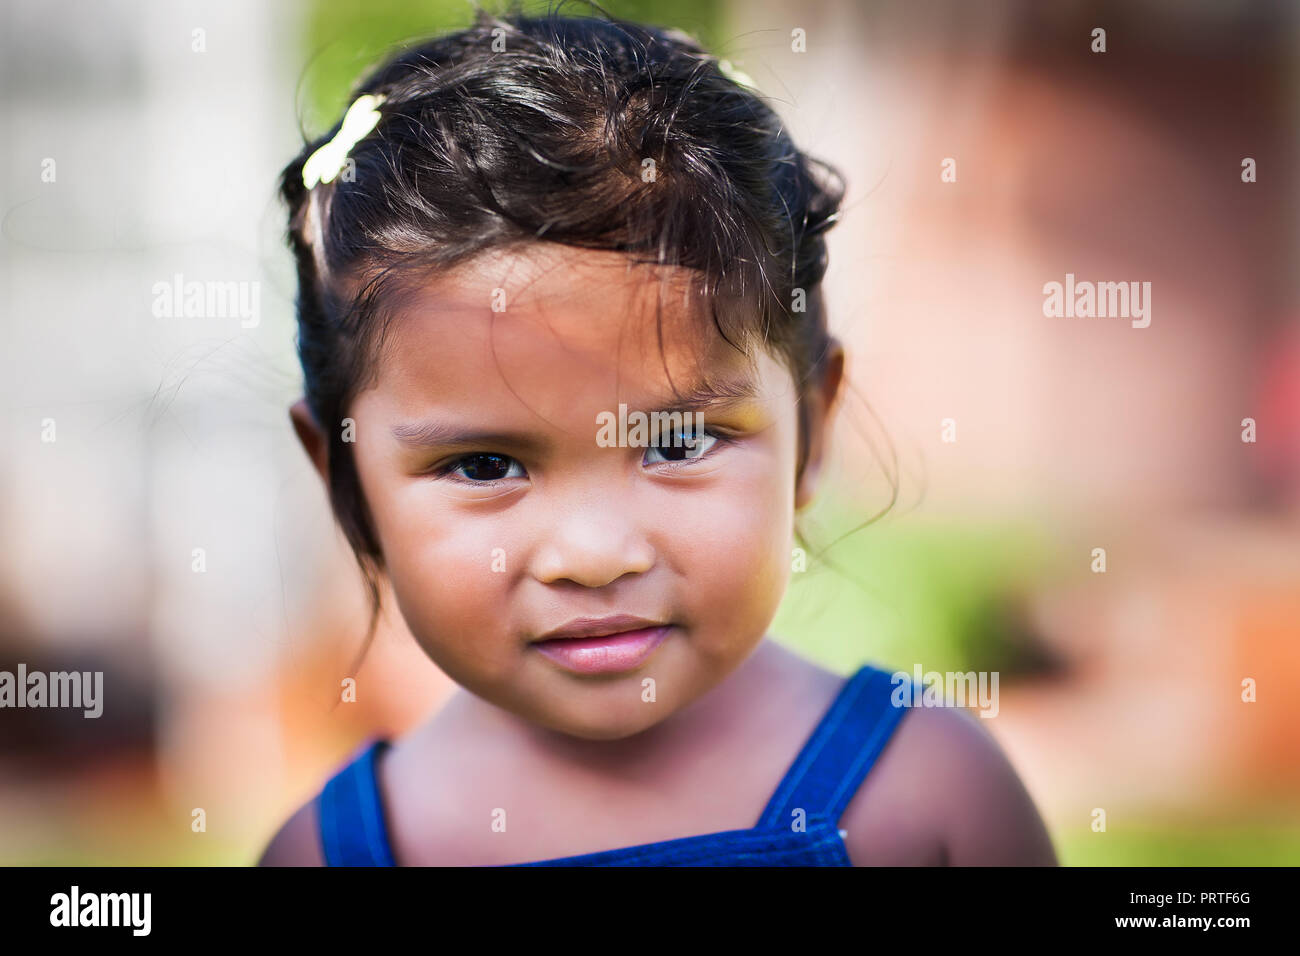 Cute little girl with thoughtful look and subtle smile - Stock Image